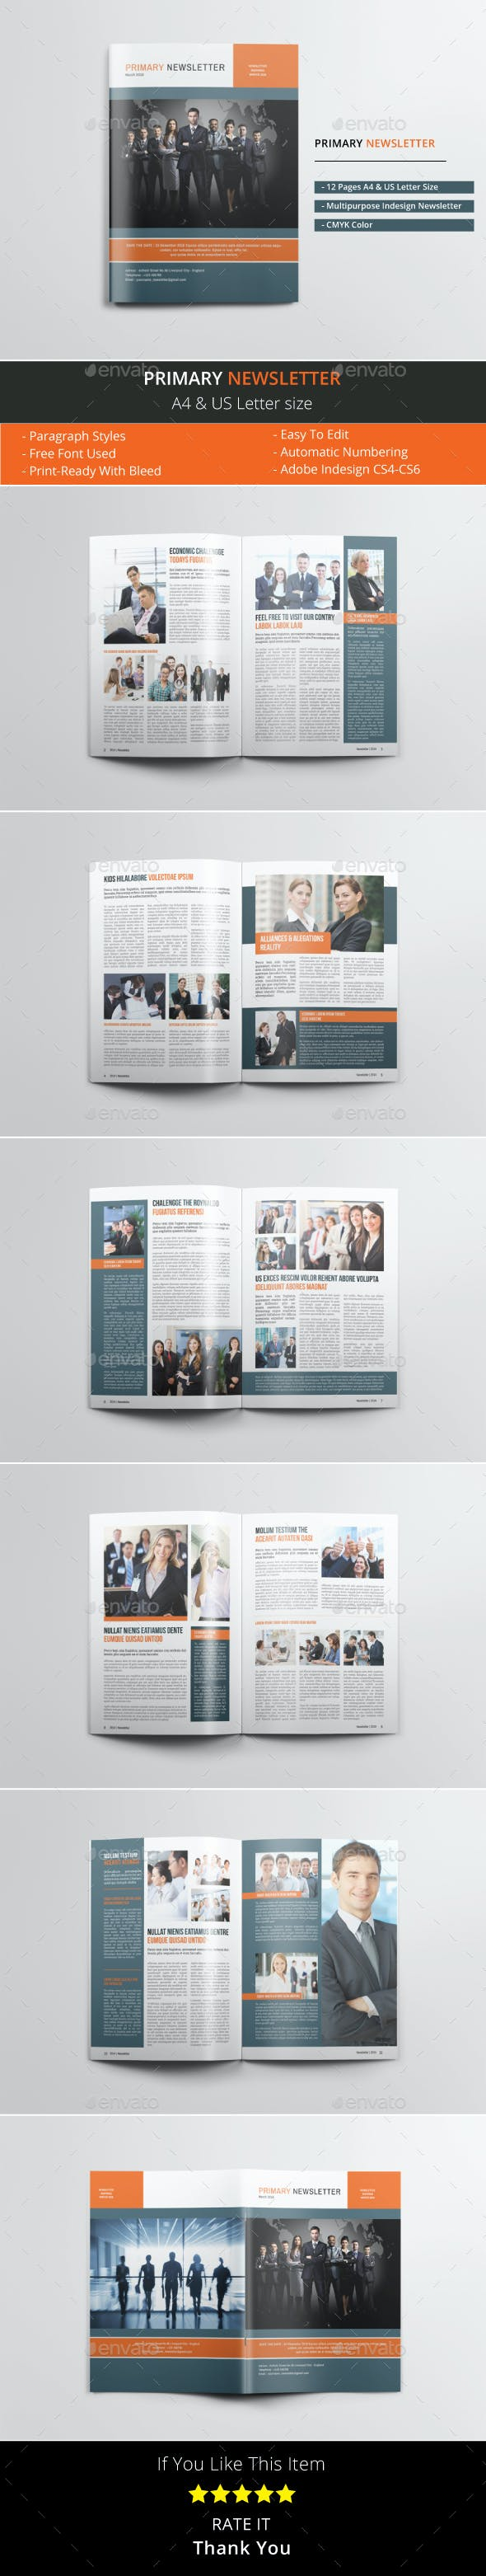 primary newsletter by le parte graphicriver